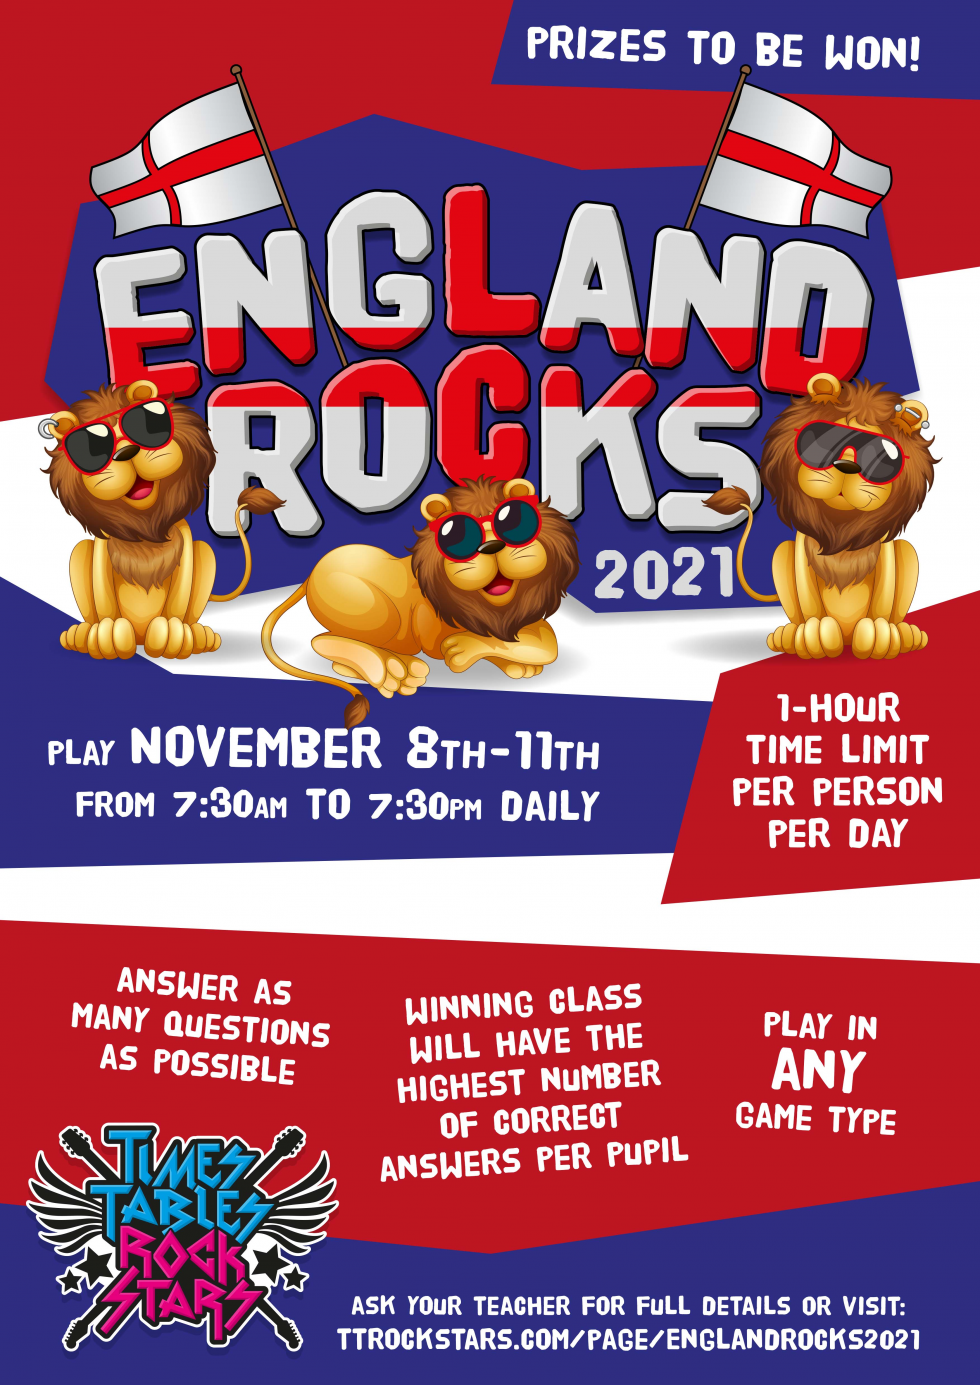 Download your England Rocks 2021 Poster now.